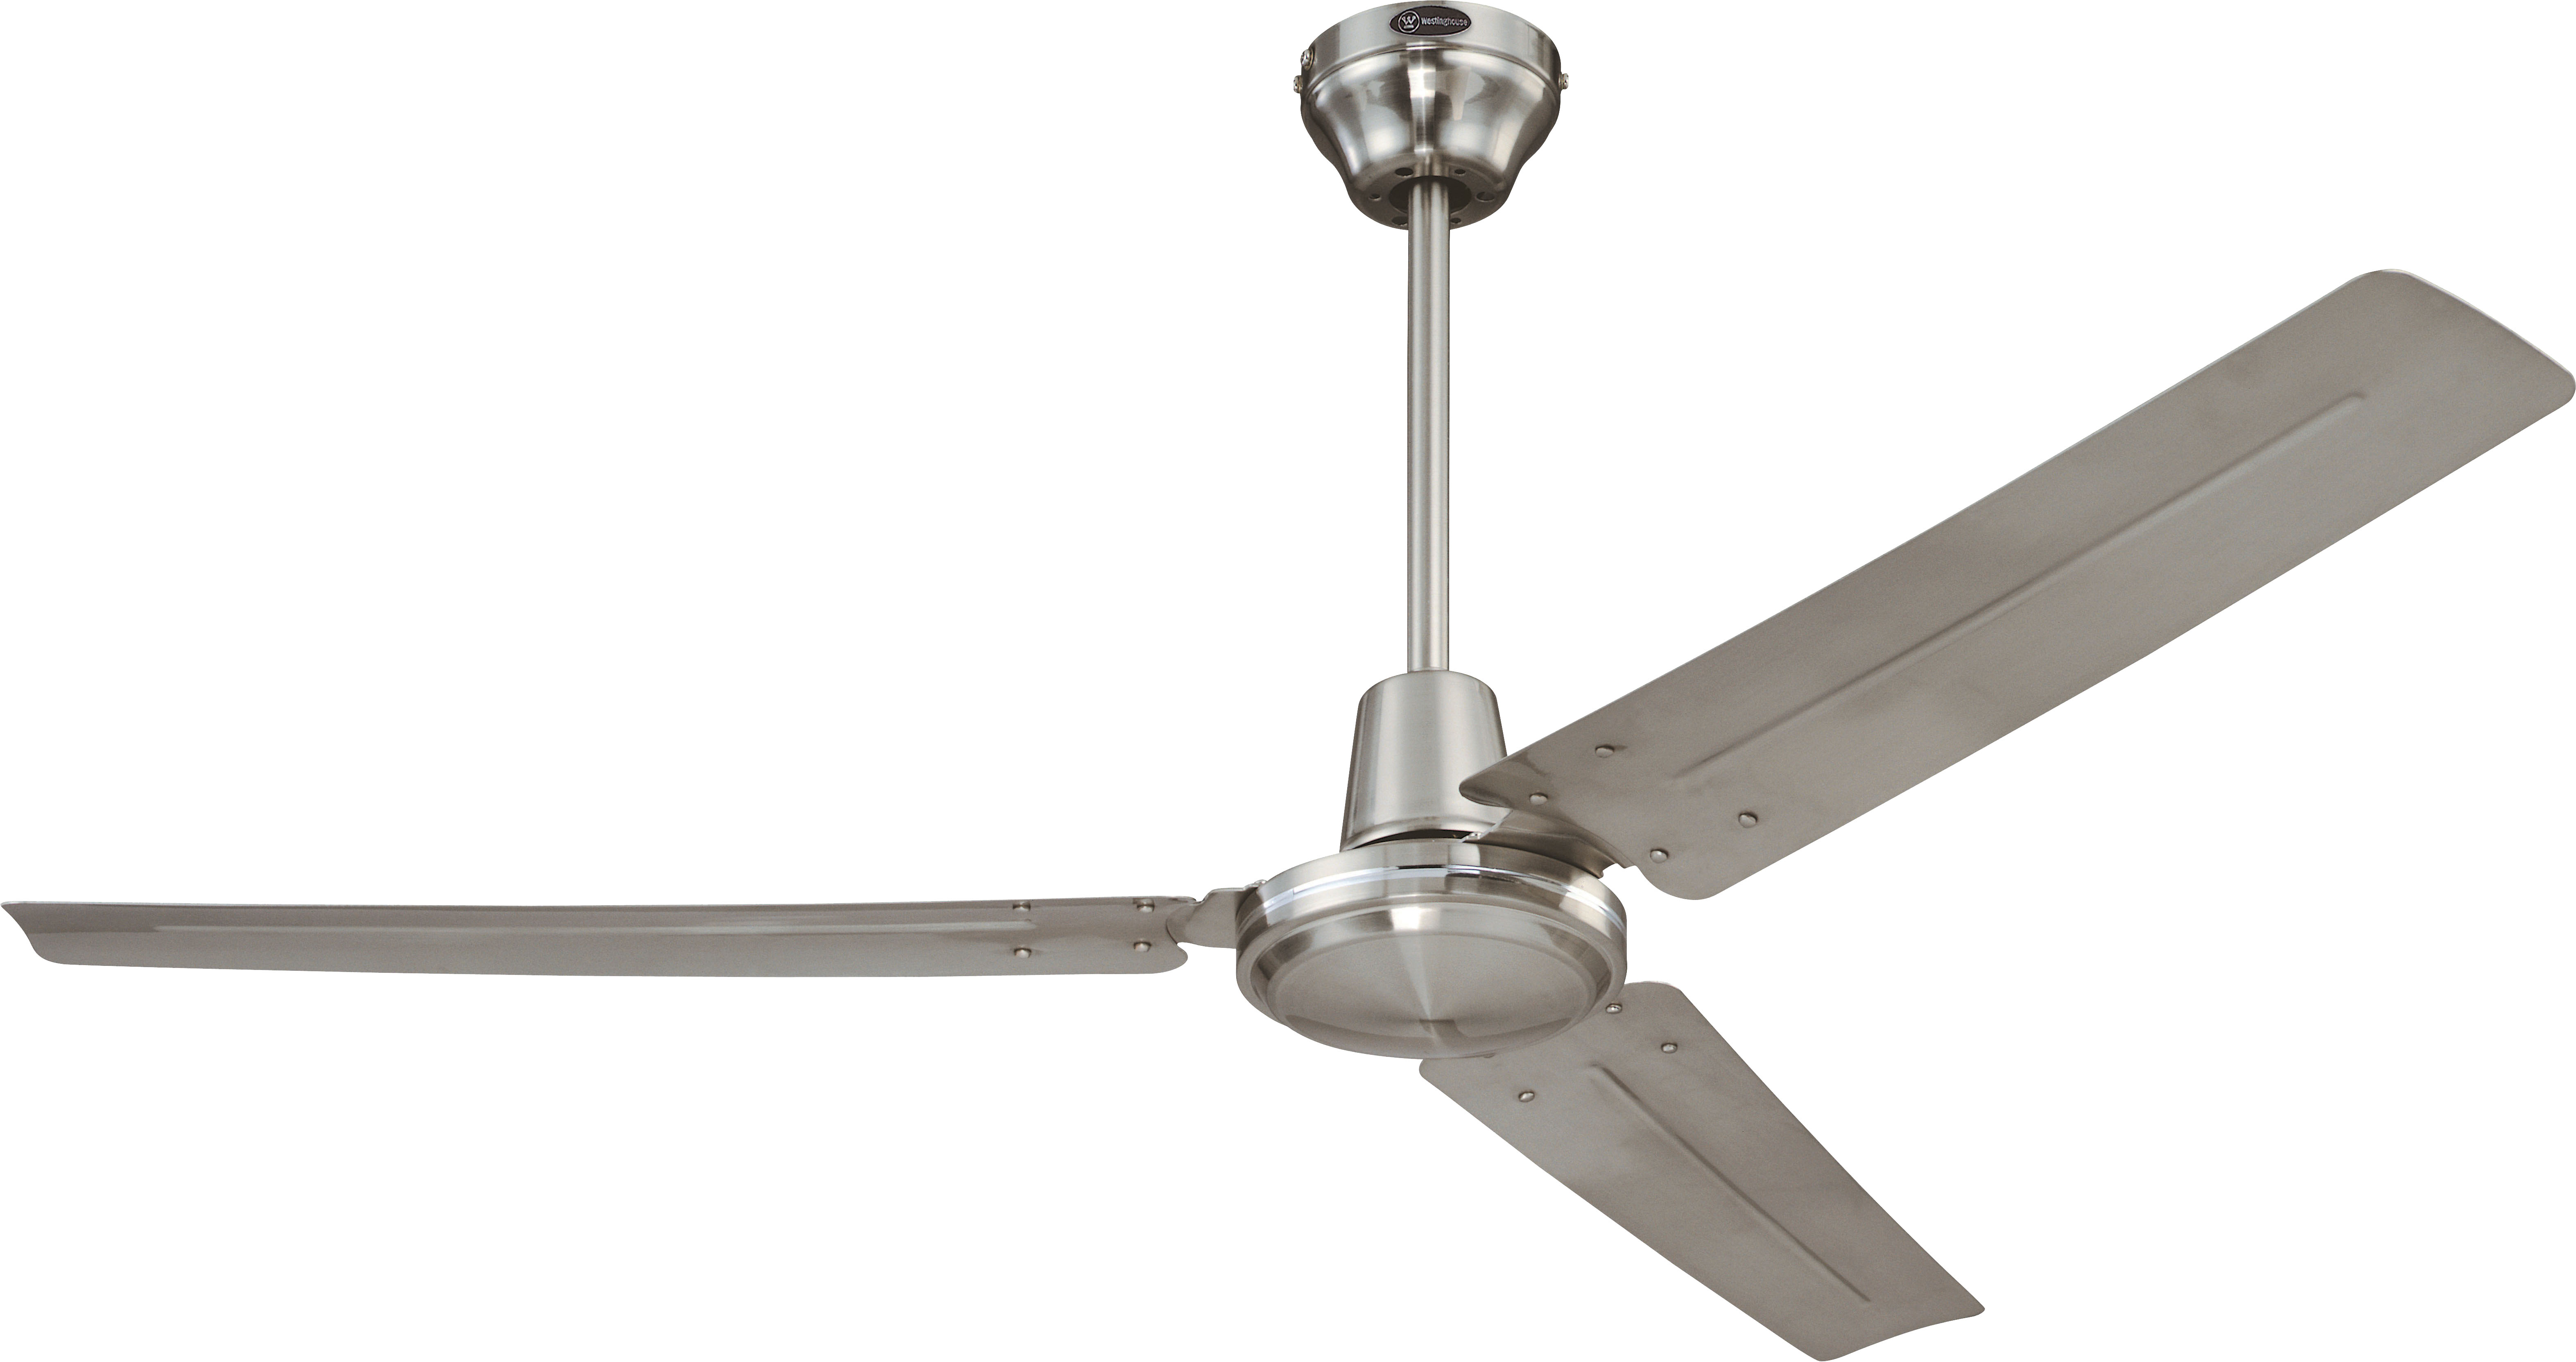 westinghouse industrial ceiling fan photo - 1